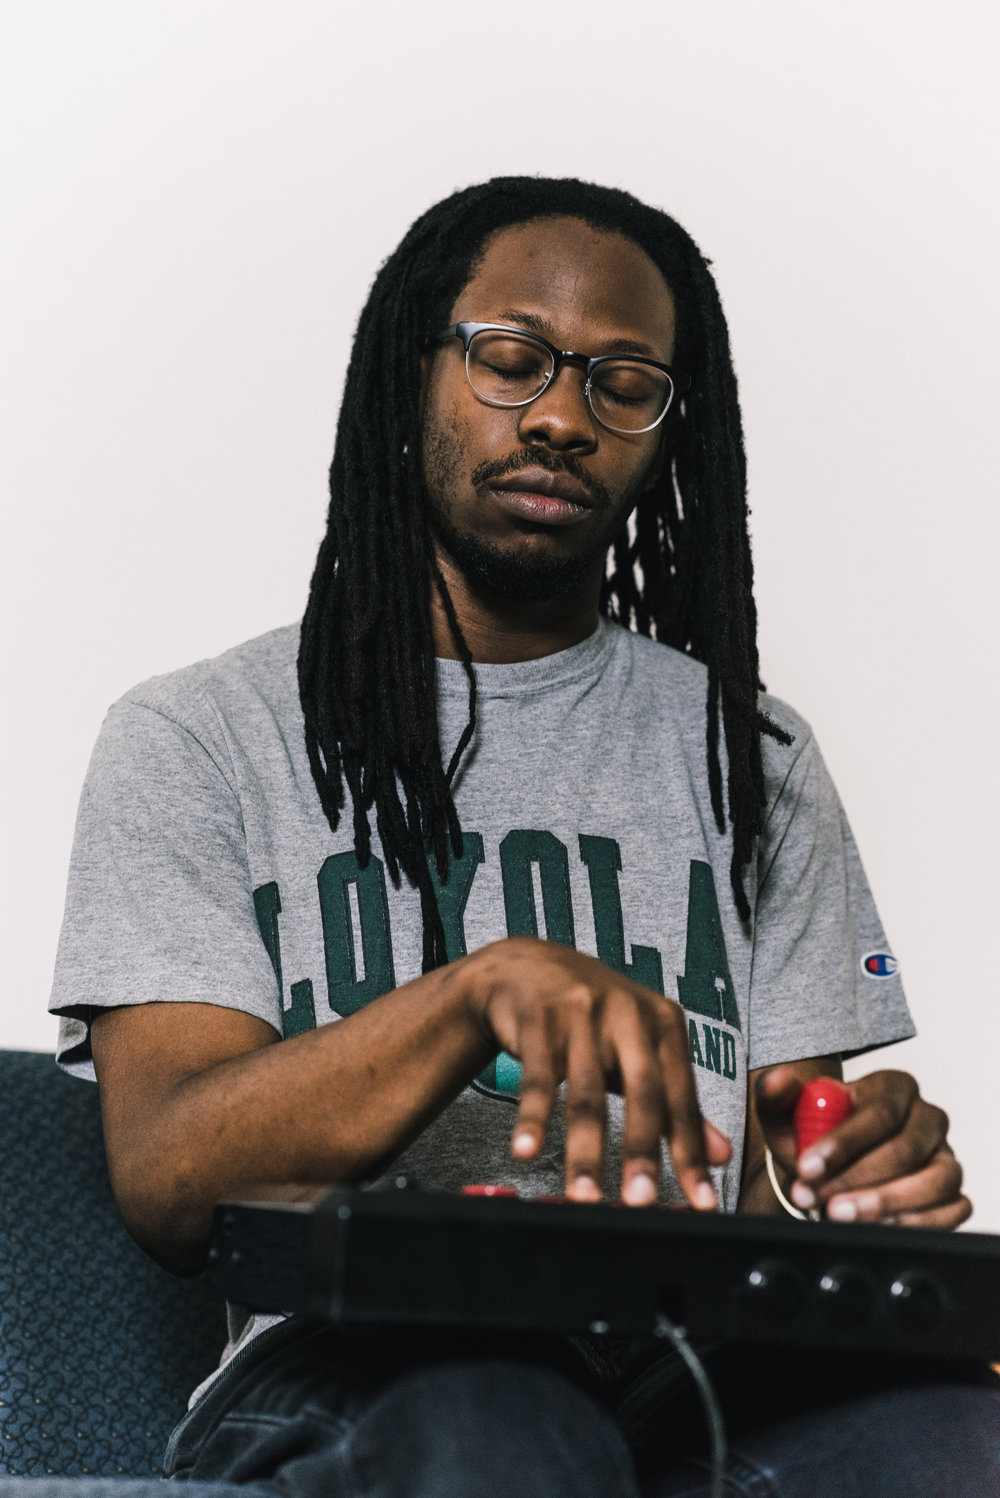 """""""I feel the most hygge when I'm playing fighting games with other people. This outlet has given me a way to express myself freely without judgement. The community within fighting games is amazing too. I can honestly say that my life would be ten times different if I didn't have this outlet or community."""""""